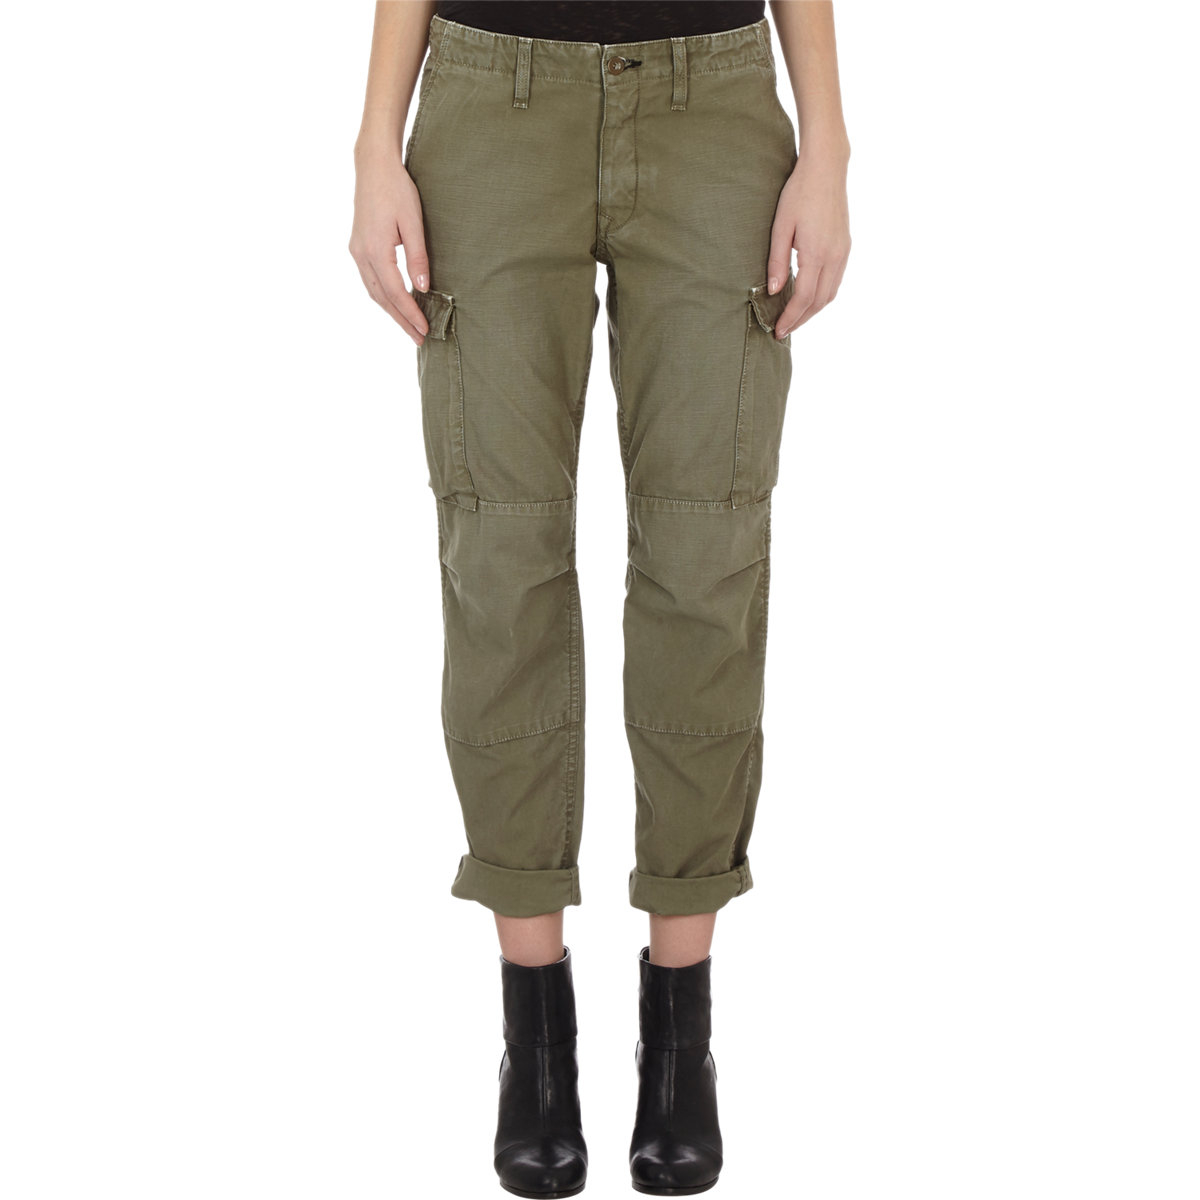 Awesome Nsf Clothing Green Women S Basquiat Cargo Pants 250 From Barneys New